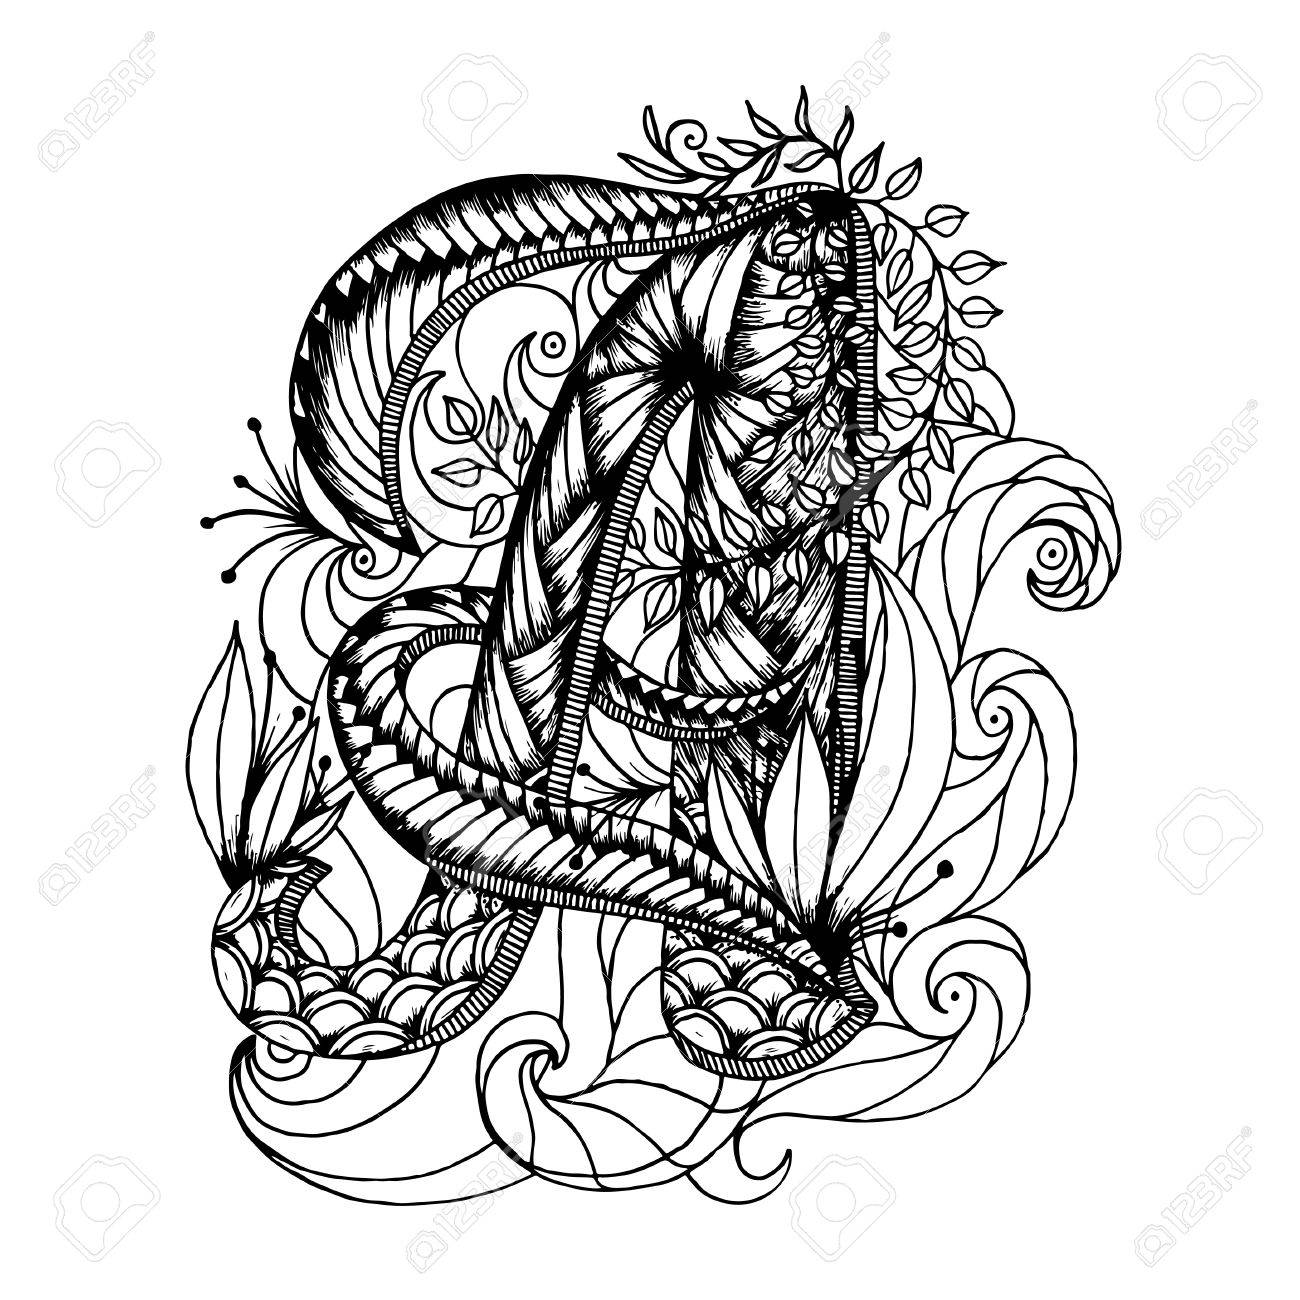 Adult Coloring Page With A Letter Of The Alphabet Royalty Free